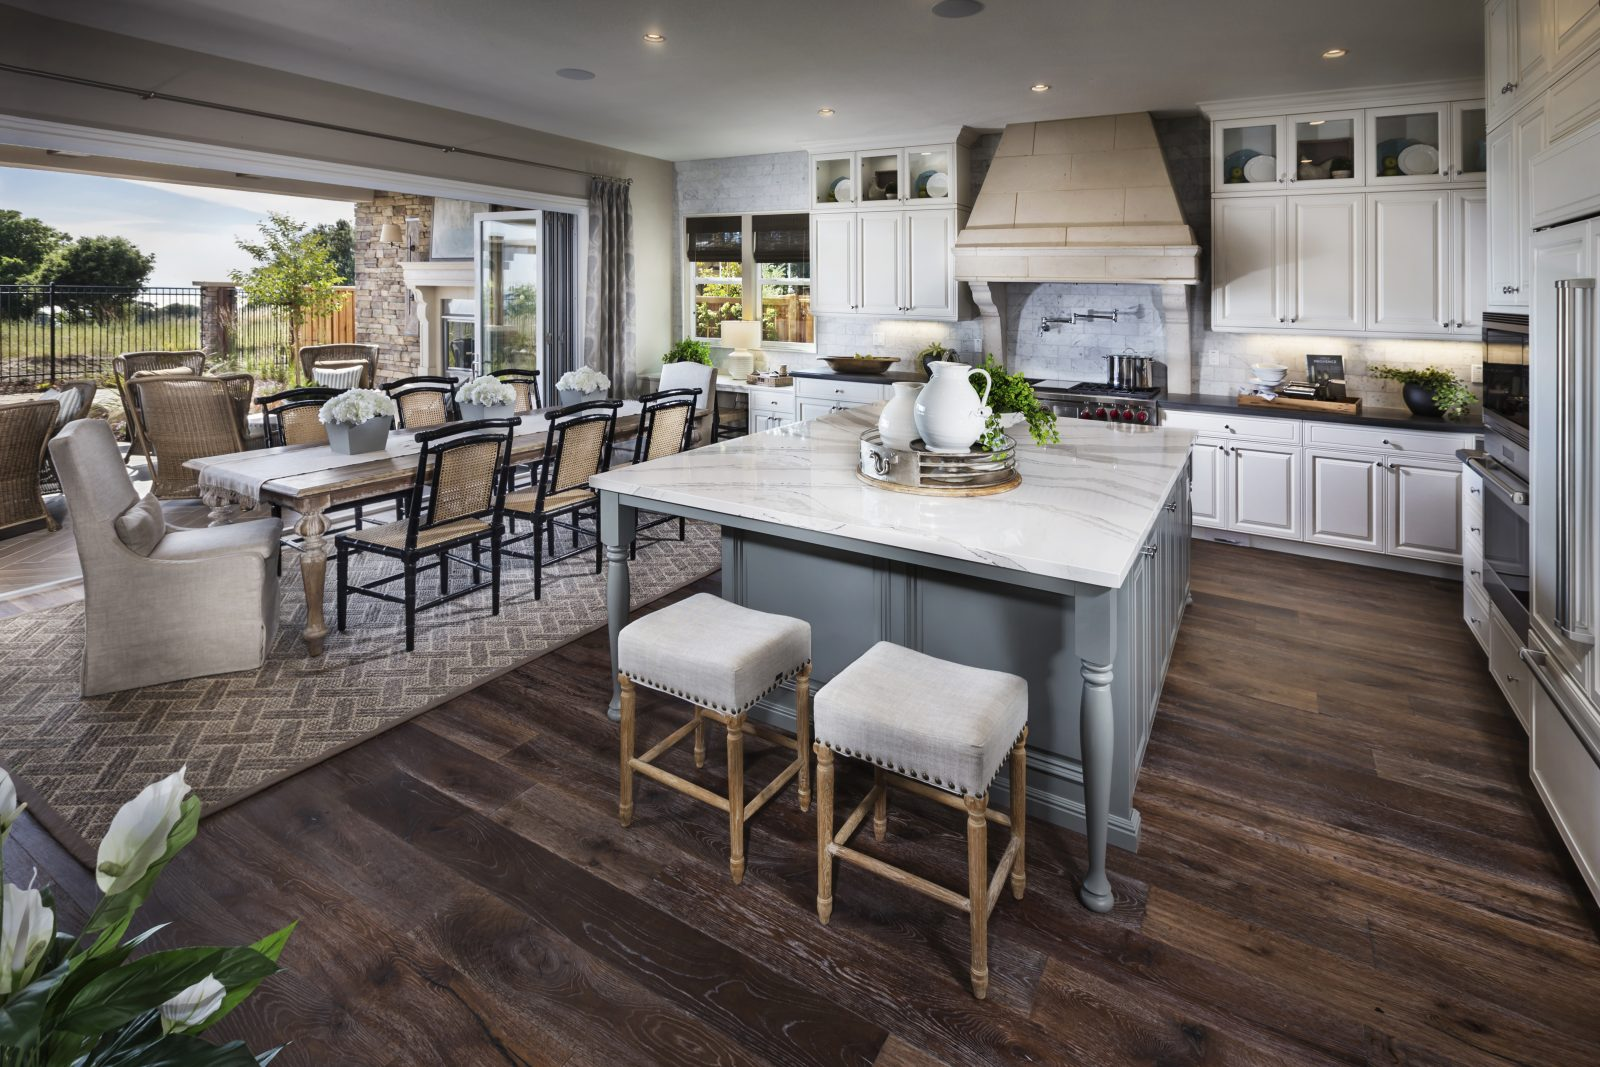 gourmet kitchen in new luxury home crown point at stonebrae in hayward ca - Brookfield Homes Floor Plans